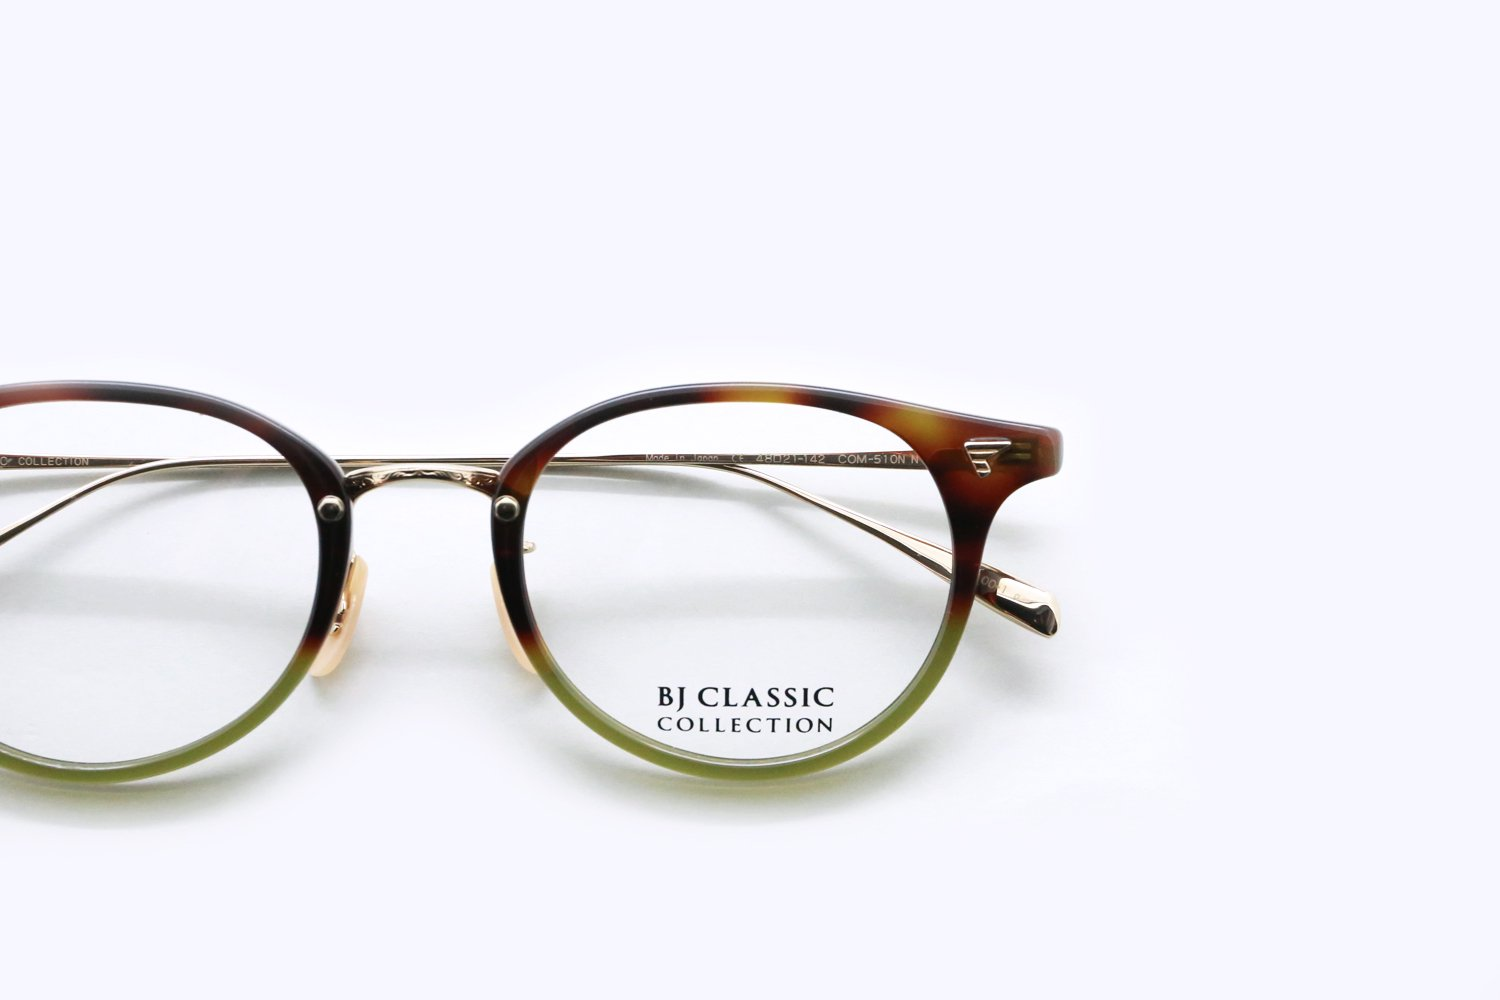 BJ CLASSIC COLLECTION COM-510NNT col.100-1